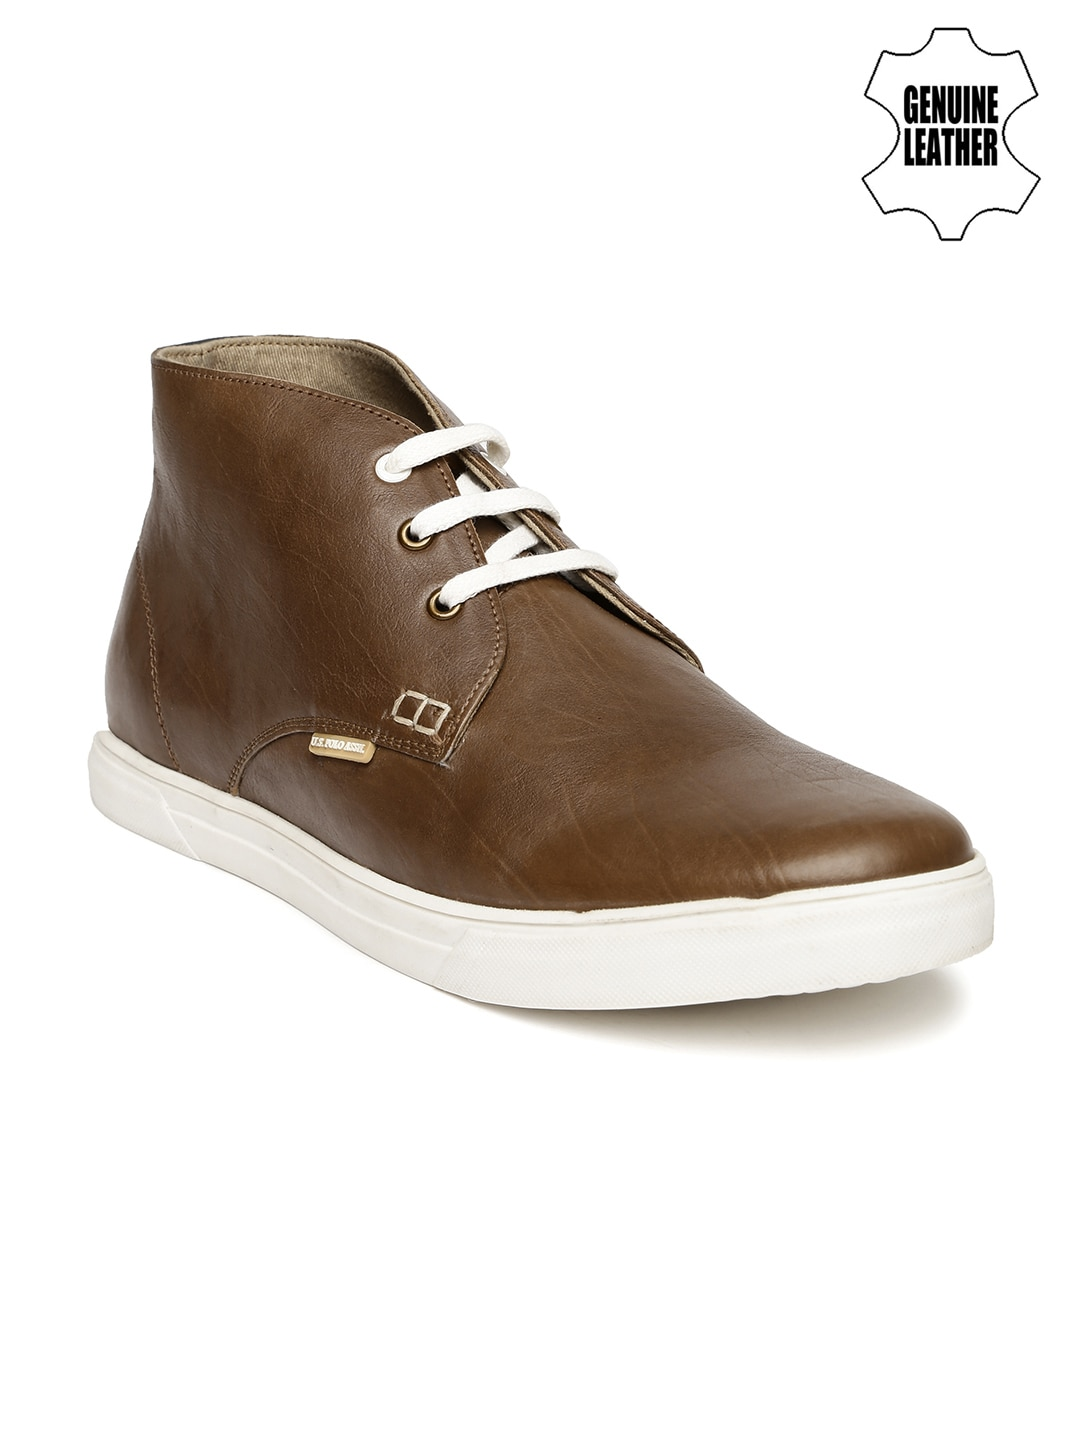 buy u s polo assn brown leather casual shoes